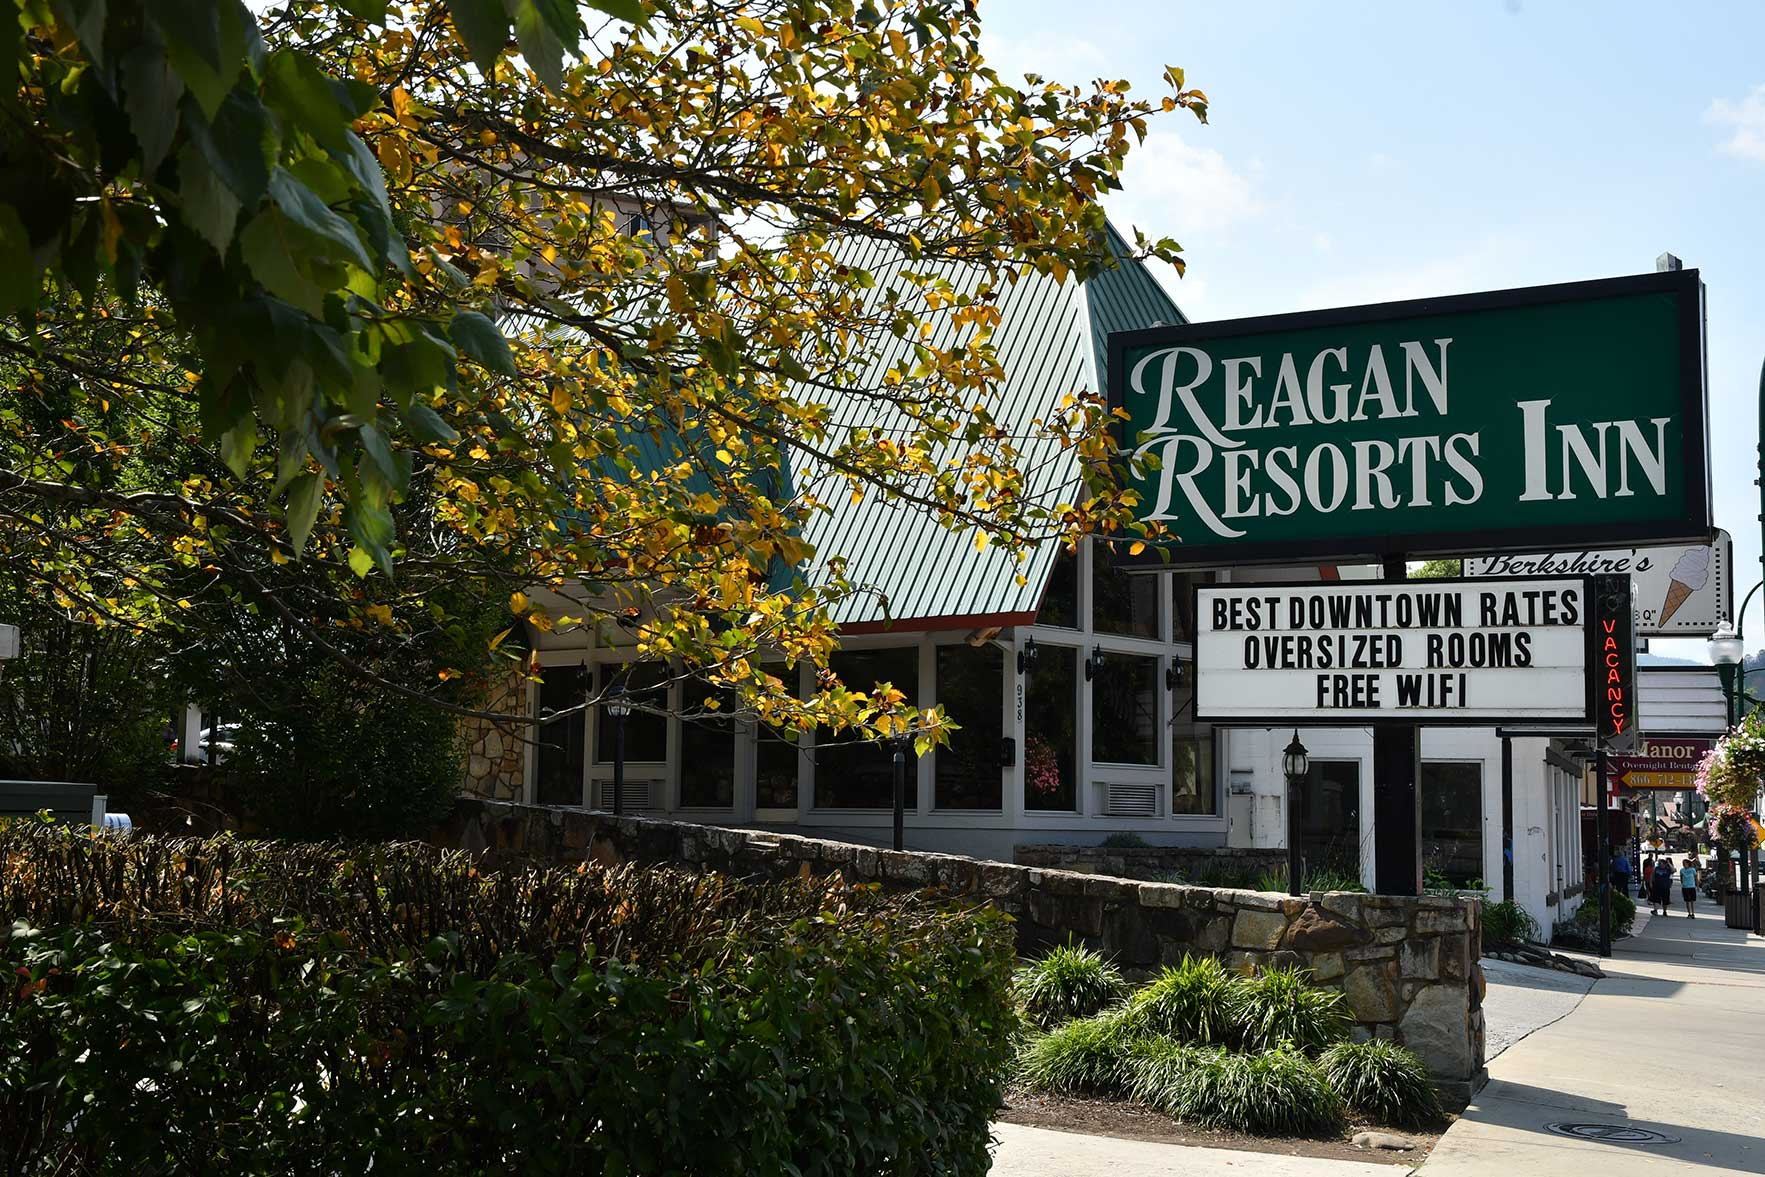 Reagan Resorts Inn in downtown Gatlinburg Tennessee